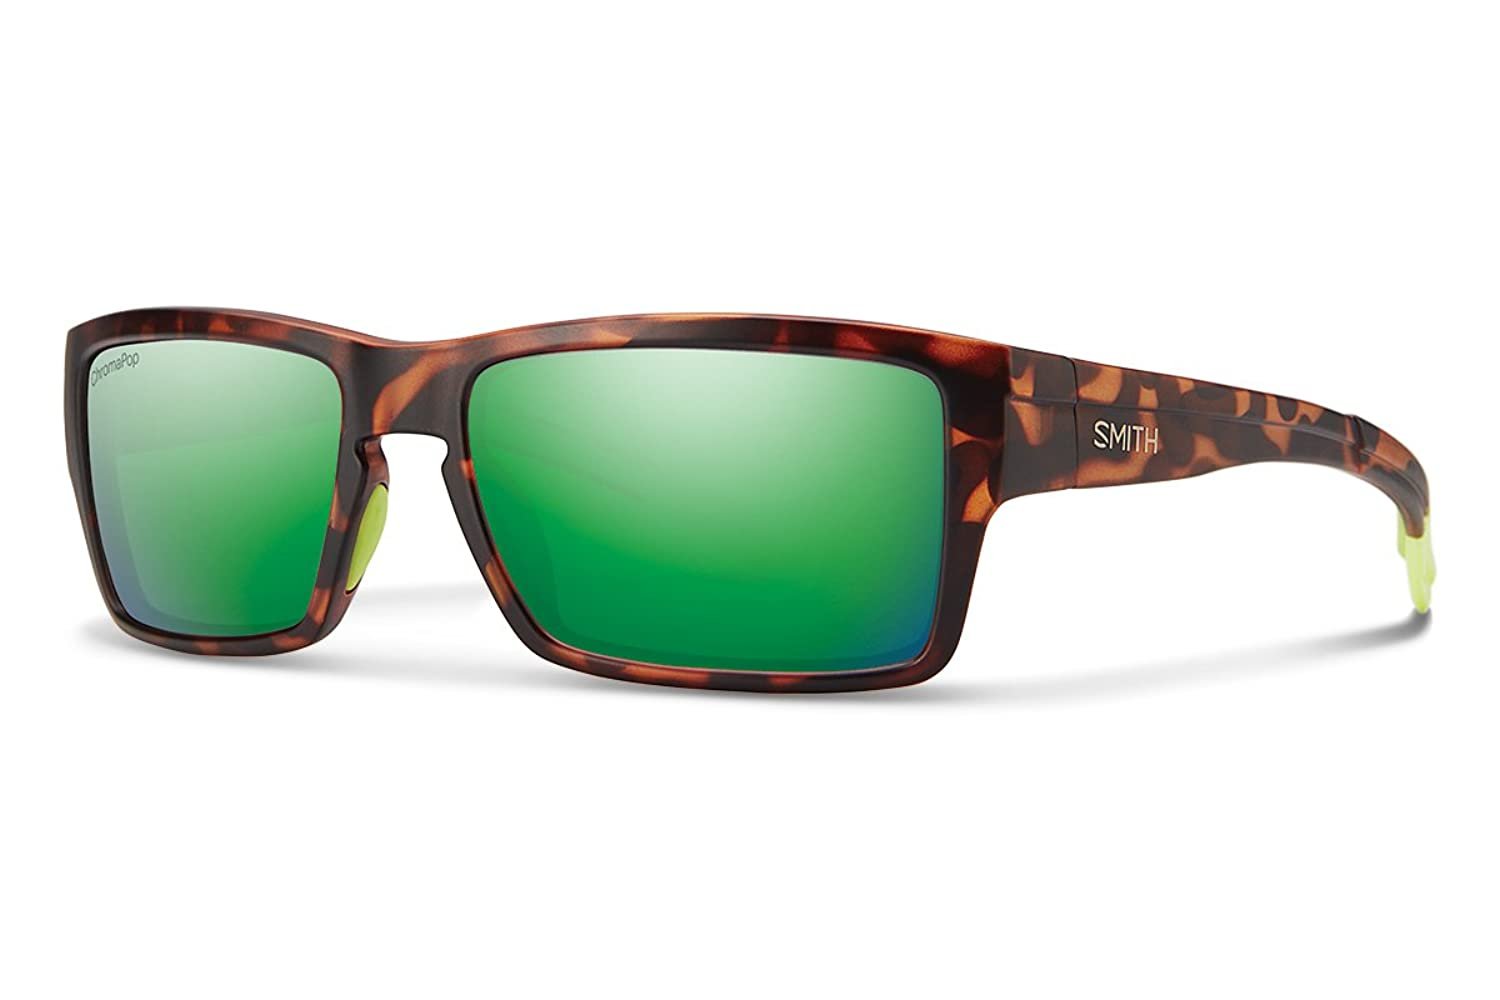 Smith Herren Sonnenbrille Flecked Green Tortoise Medium nH83iEG4K